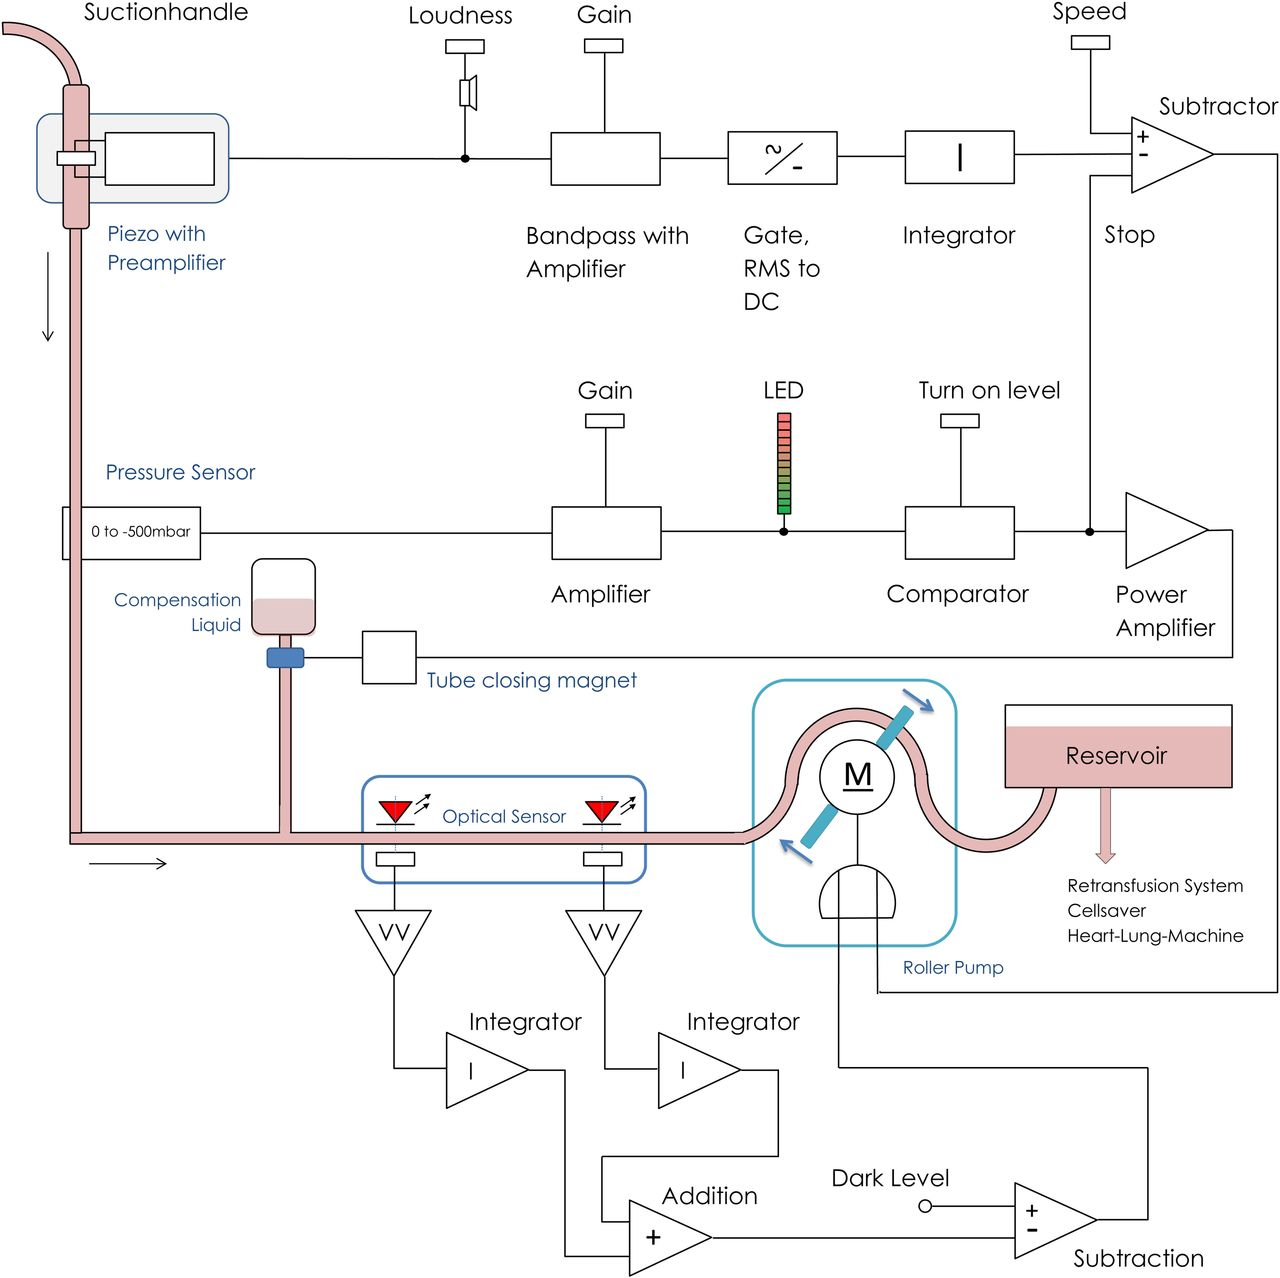 New Device For Intraoperative Blood Suction Avoiding Turbulences Vacuum Pump Connection Diagram Free Download Wiring Figure Open In Tab Powerpoint 1 Block Of Turbulence Controlled